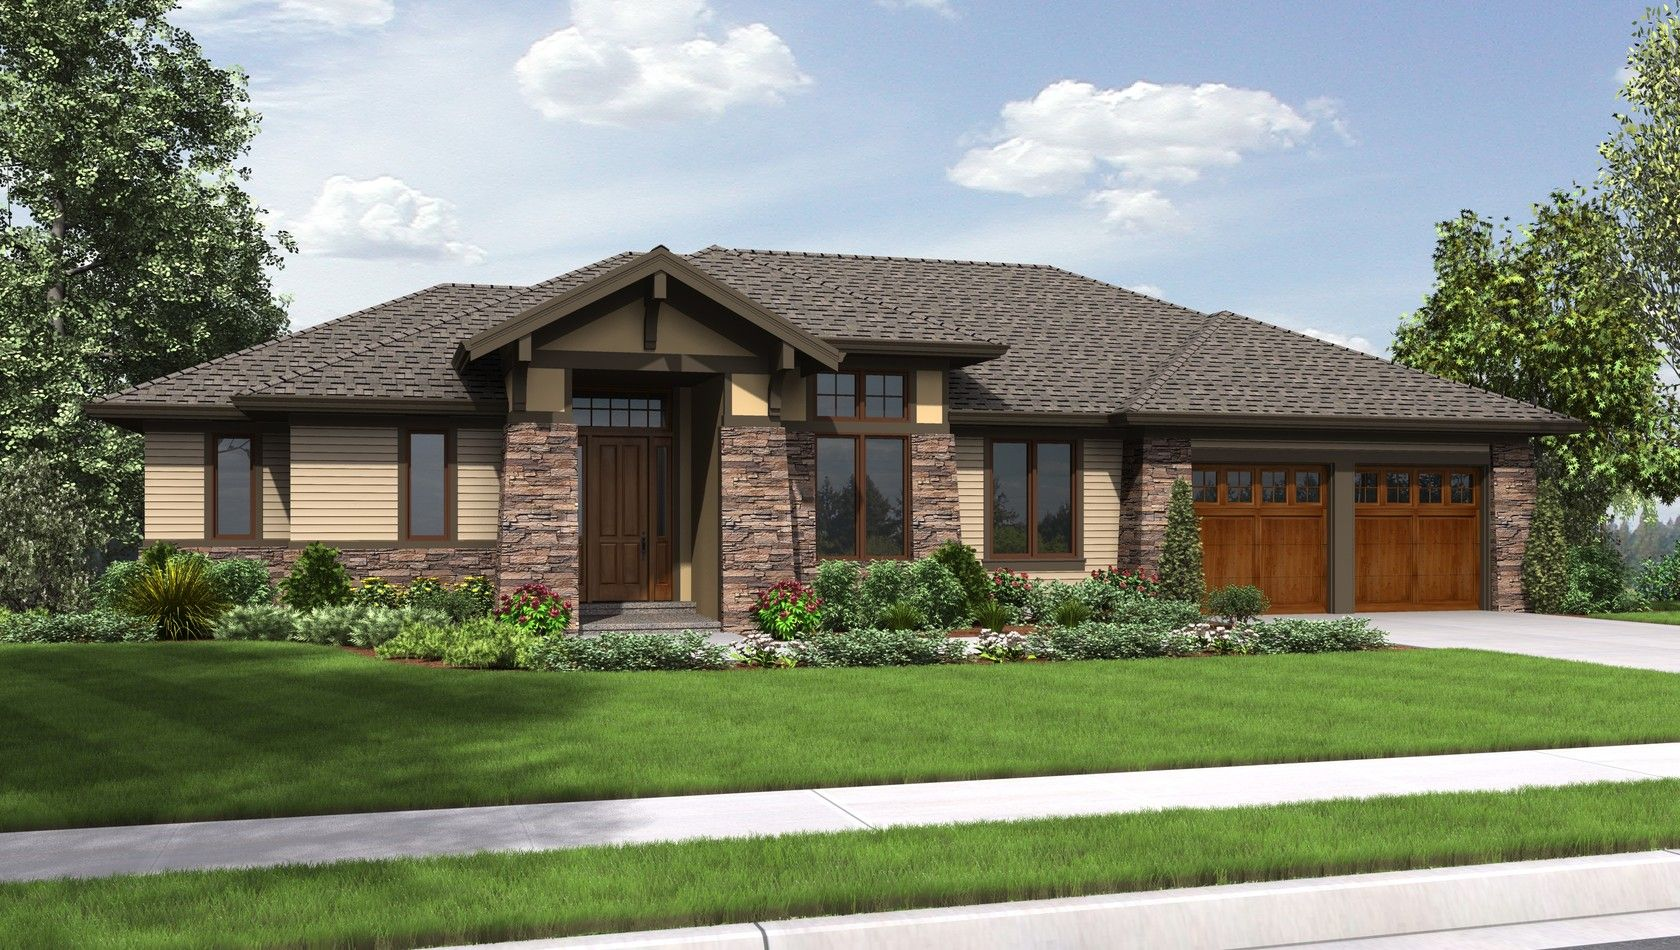 Mascord house plan 1339 house hip roof design and flat roof house Ranch style house plans